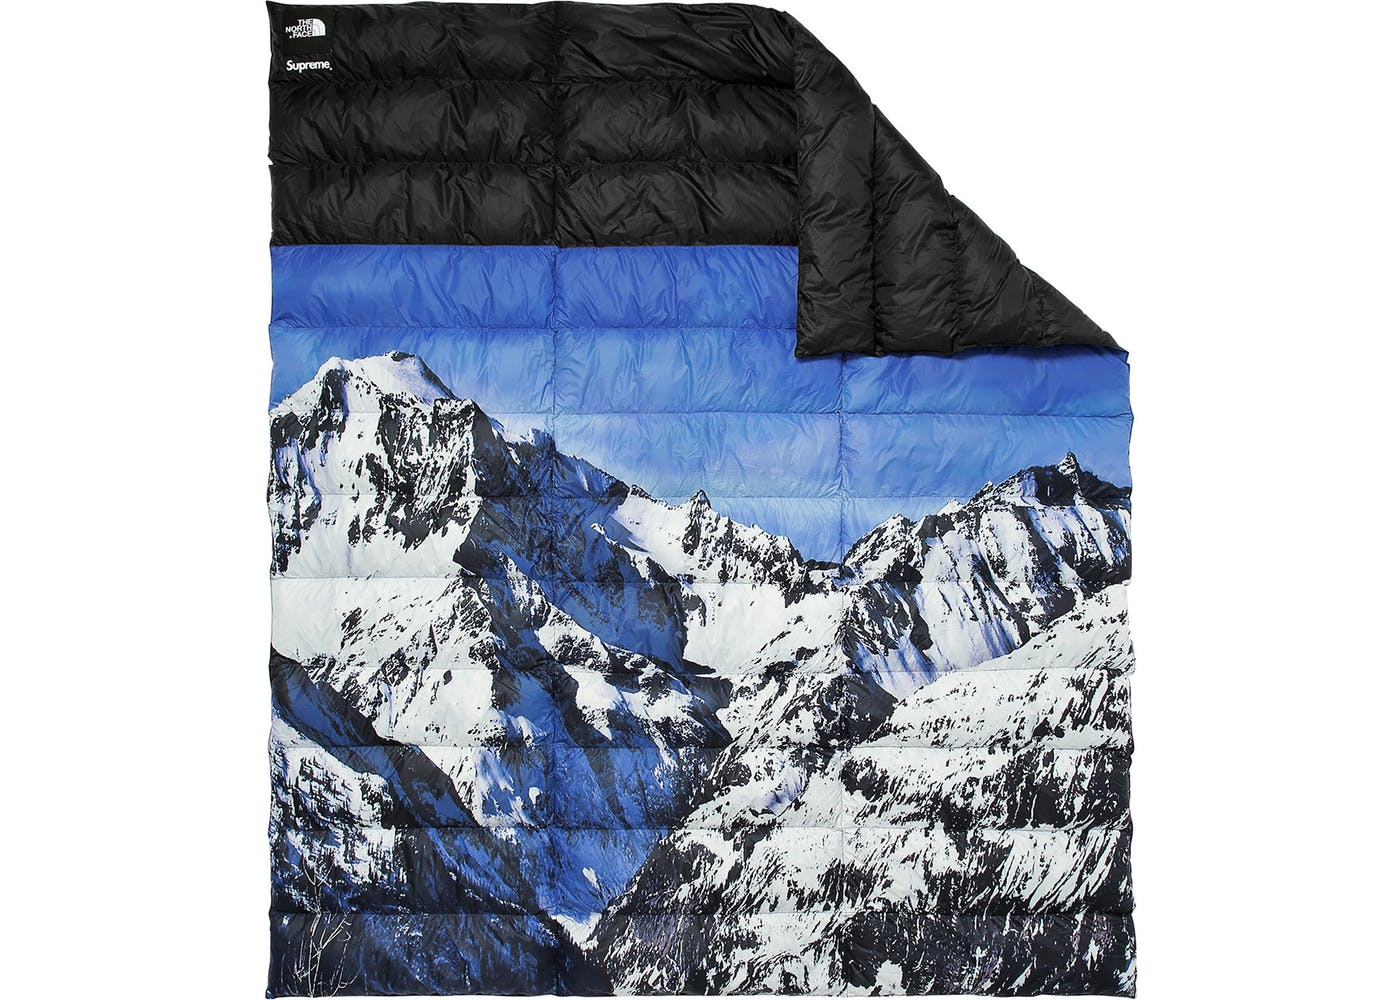 aa17e25b4 Supreme x The North Face Mountain Nupste Blanket